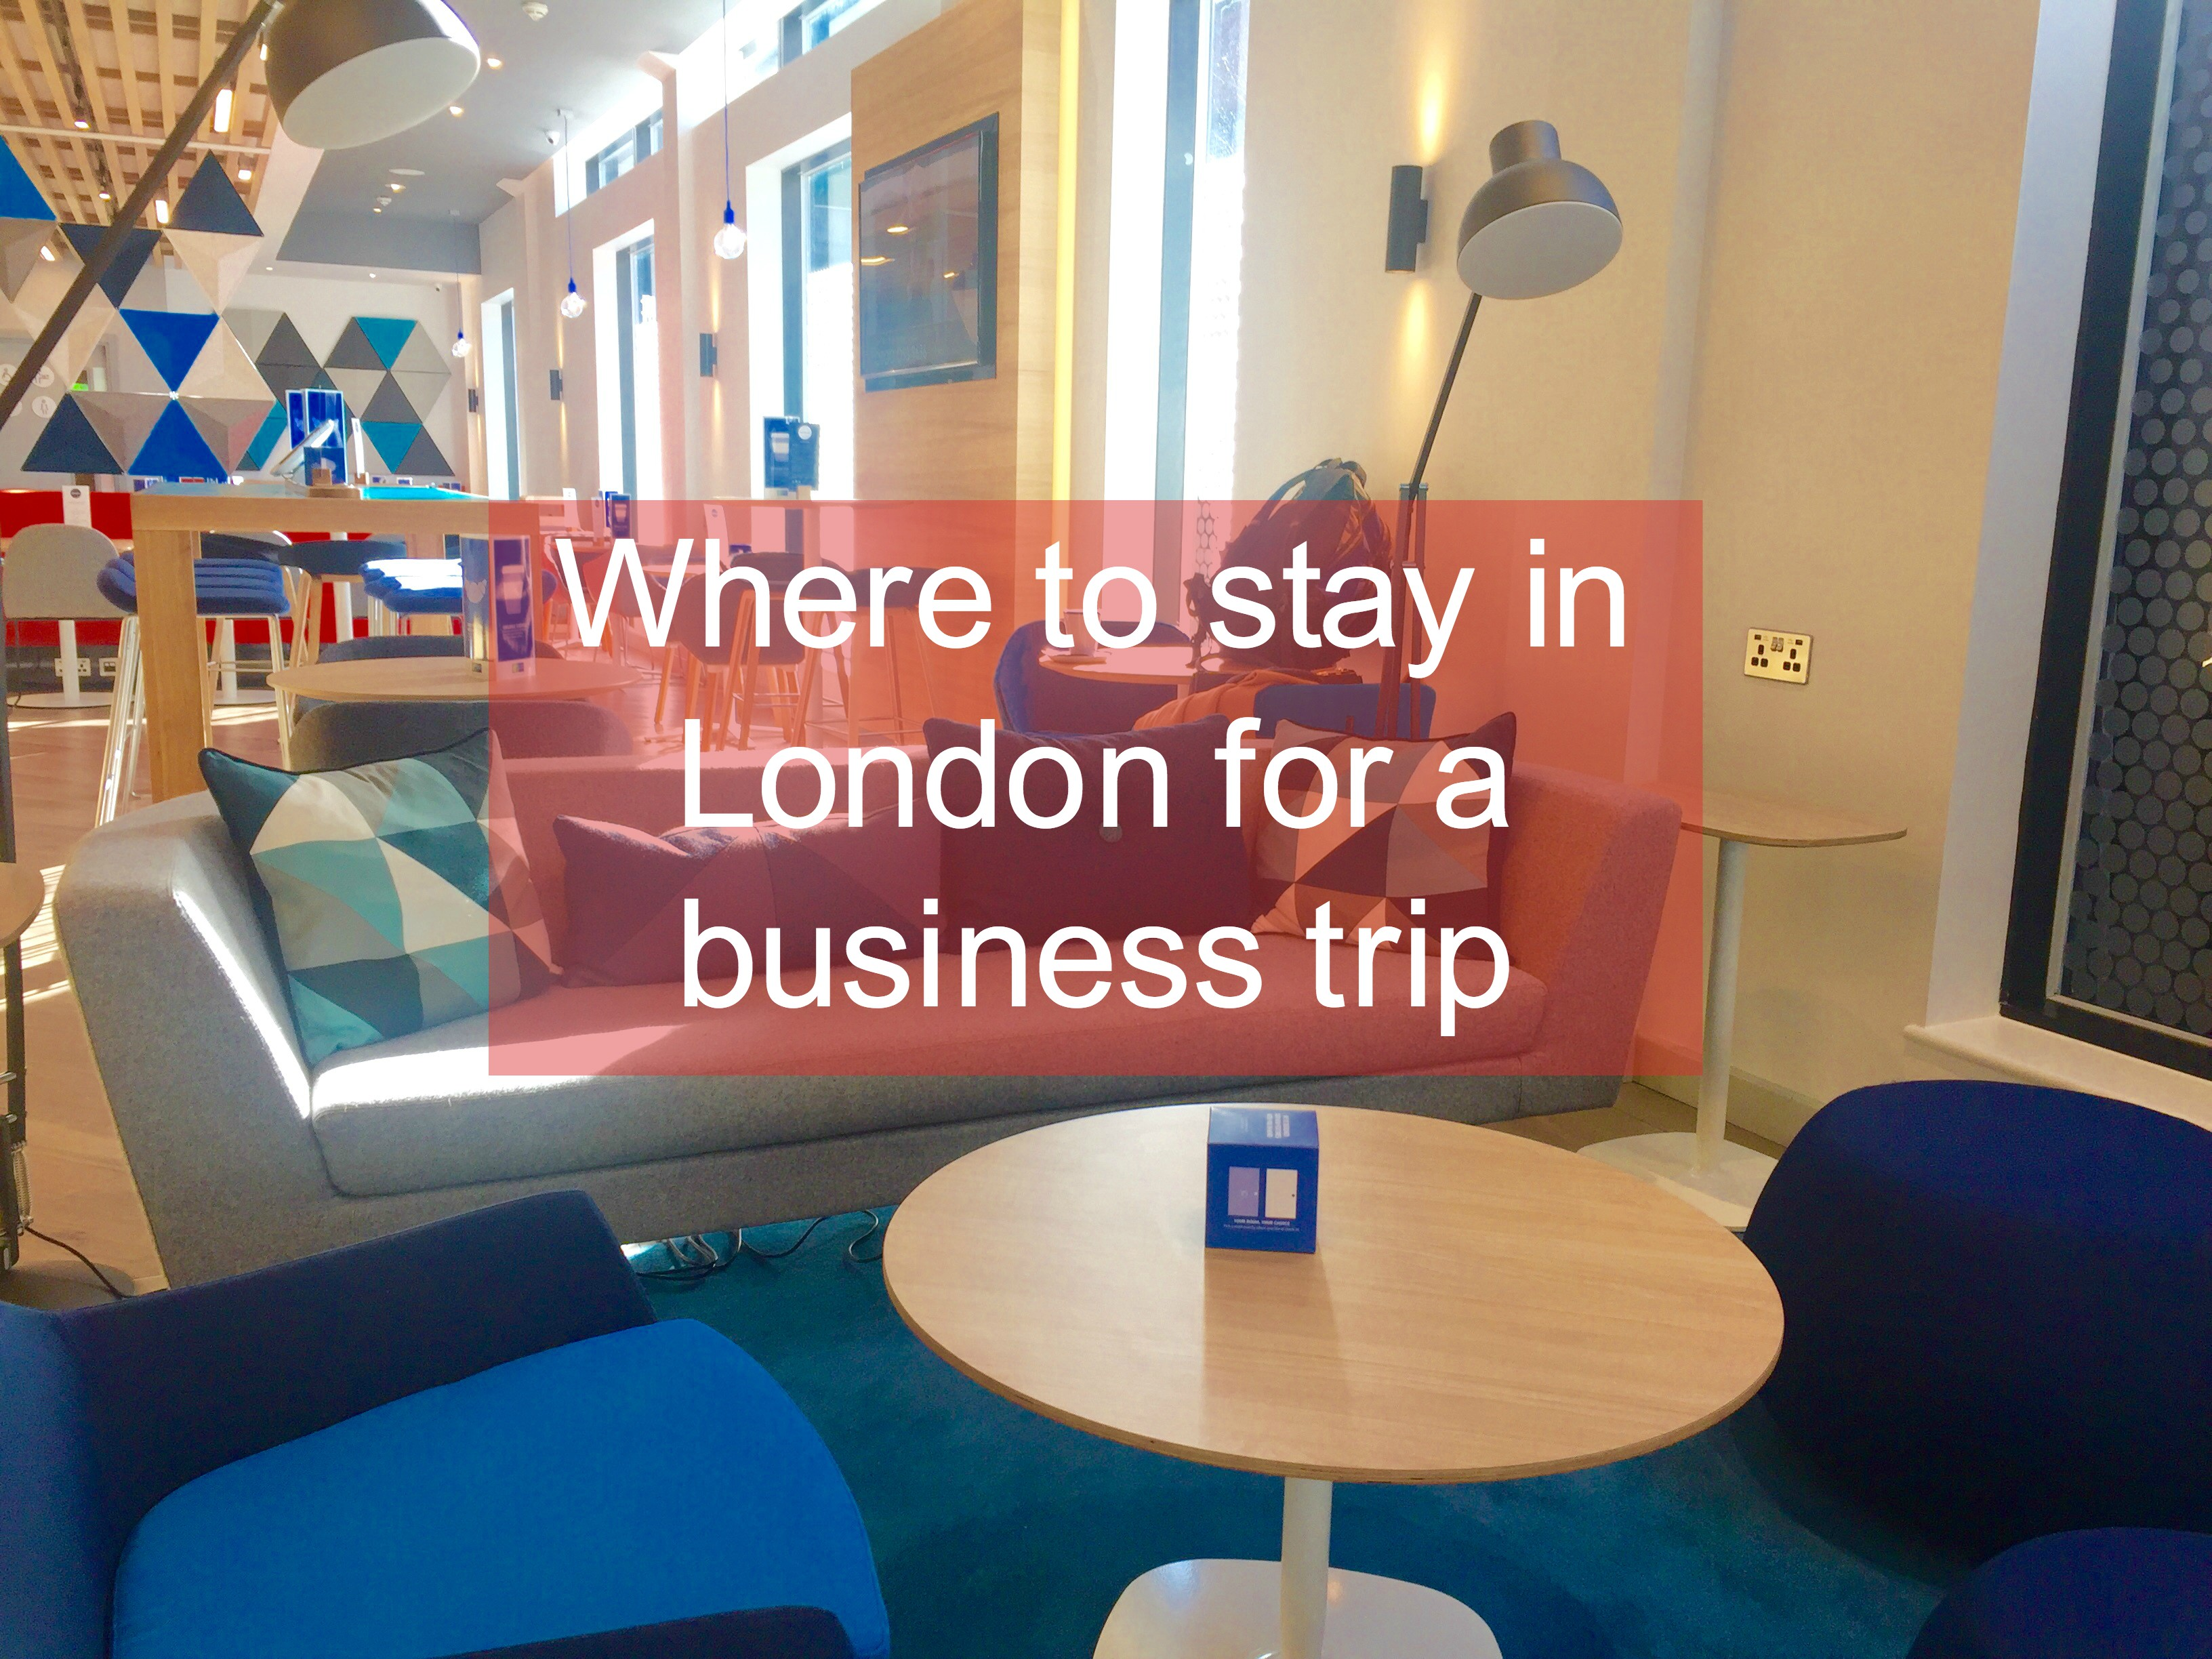 Where to stay in London for business travel